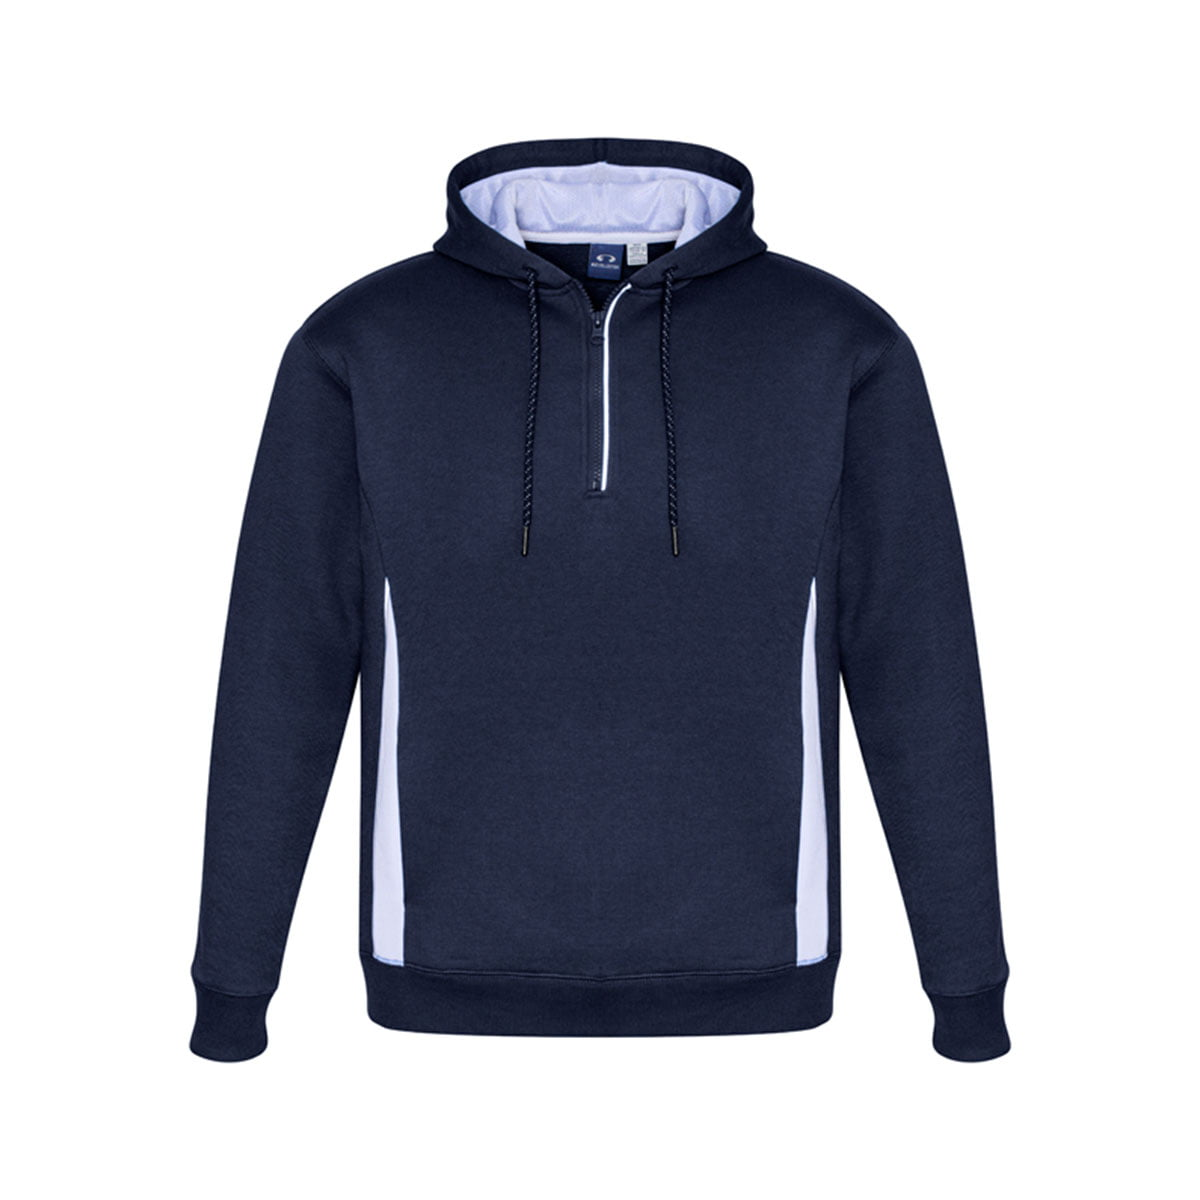 Adults Renegade Hoodie-Navy / White / Silver